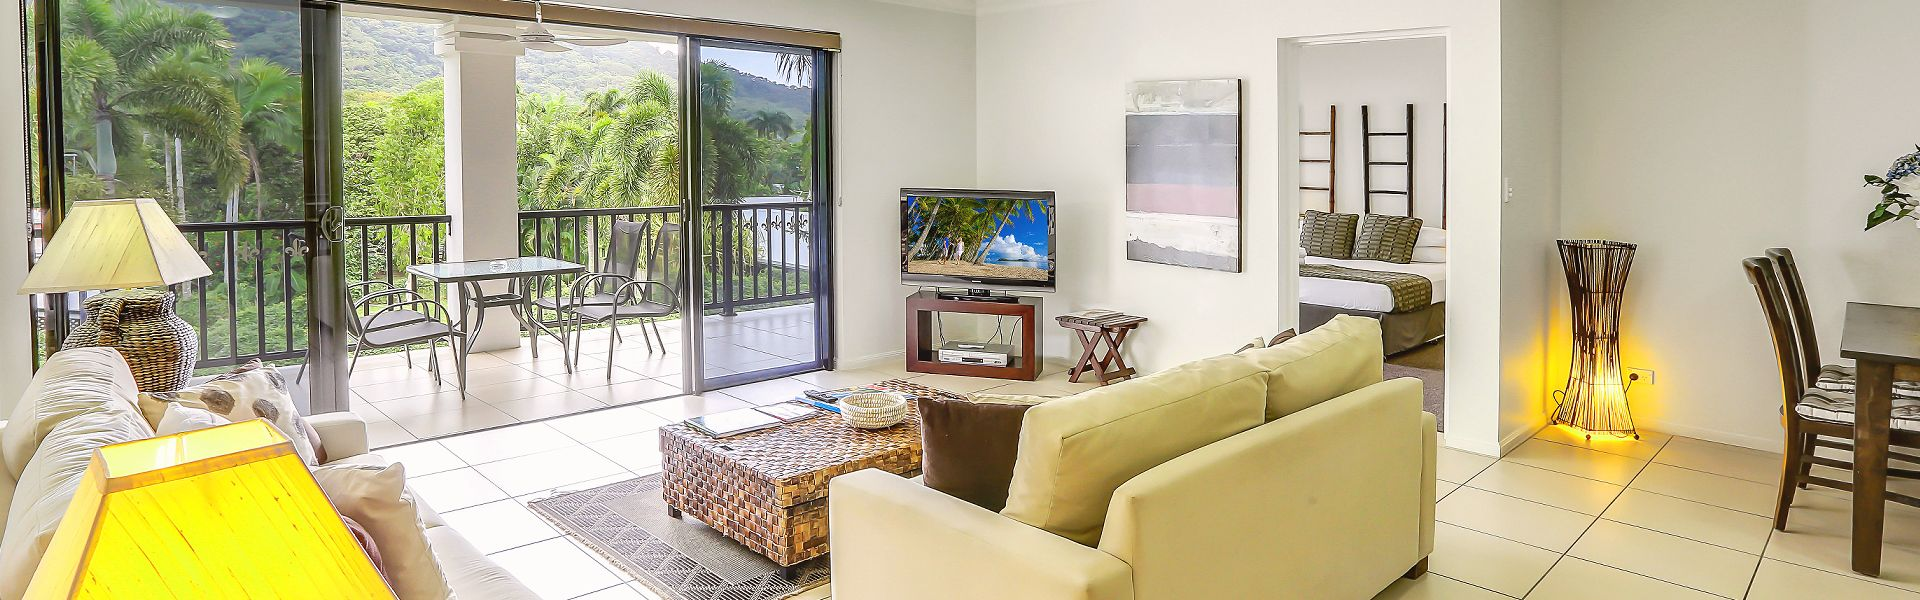 Palm Cove Cairns Holiday Apartment Accommodation Features